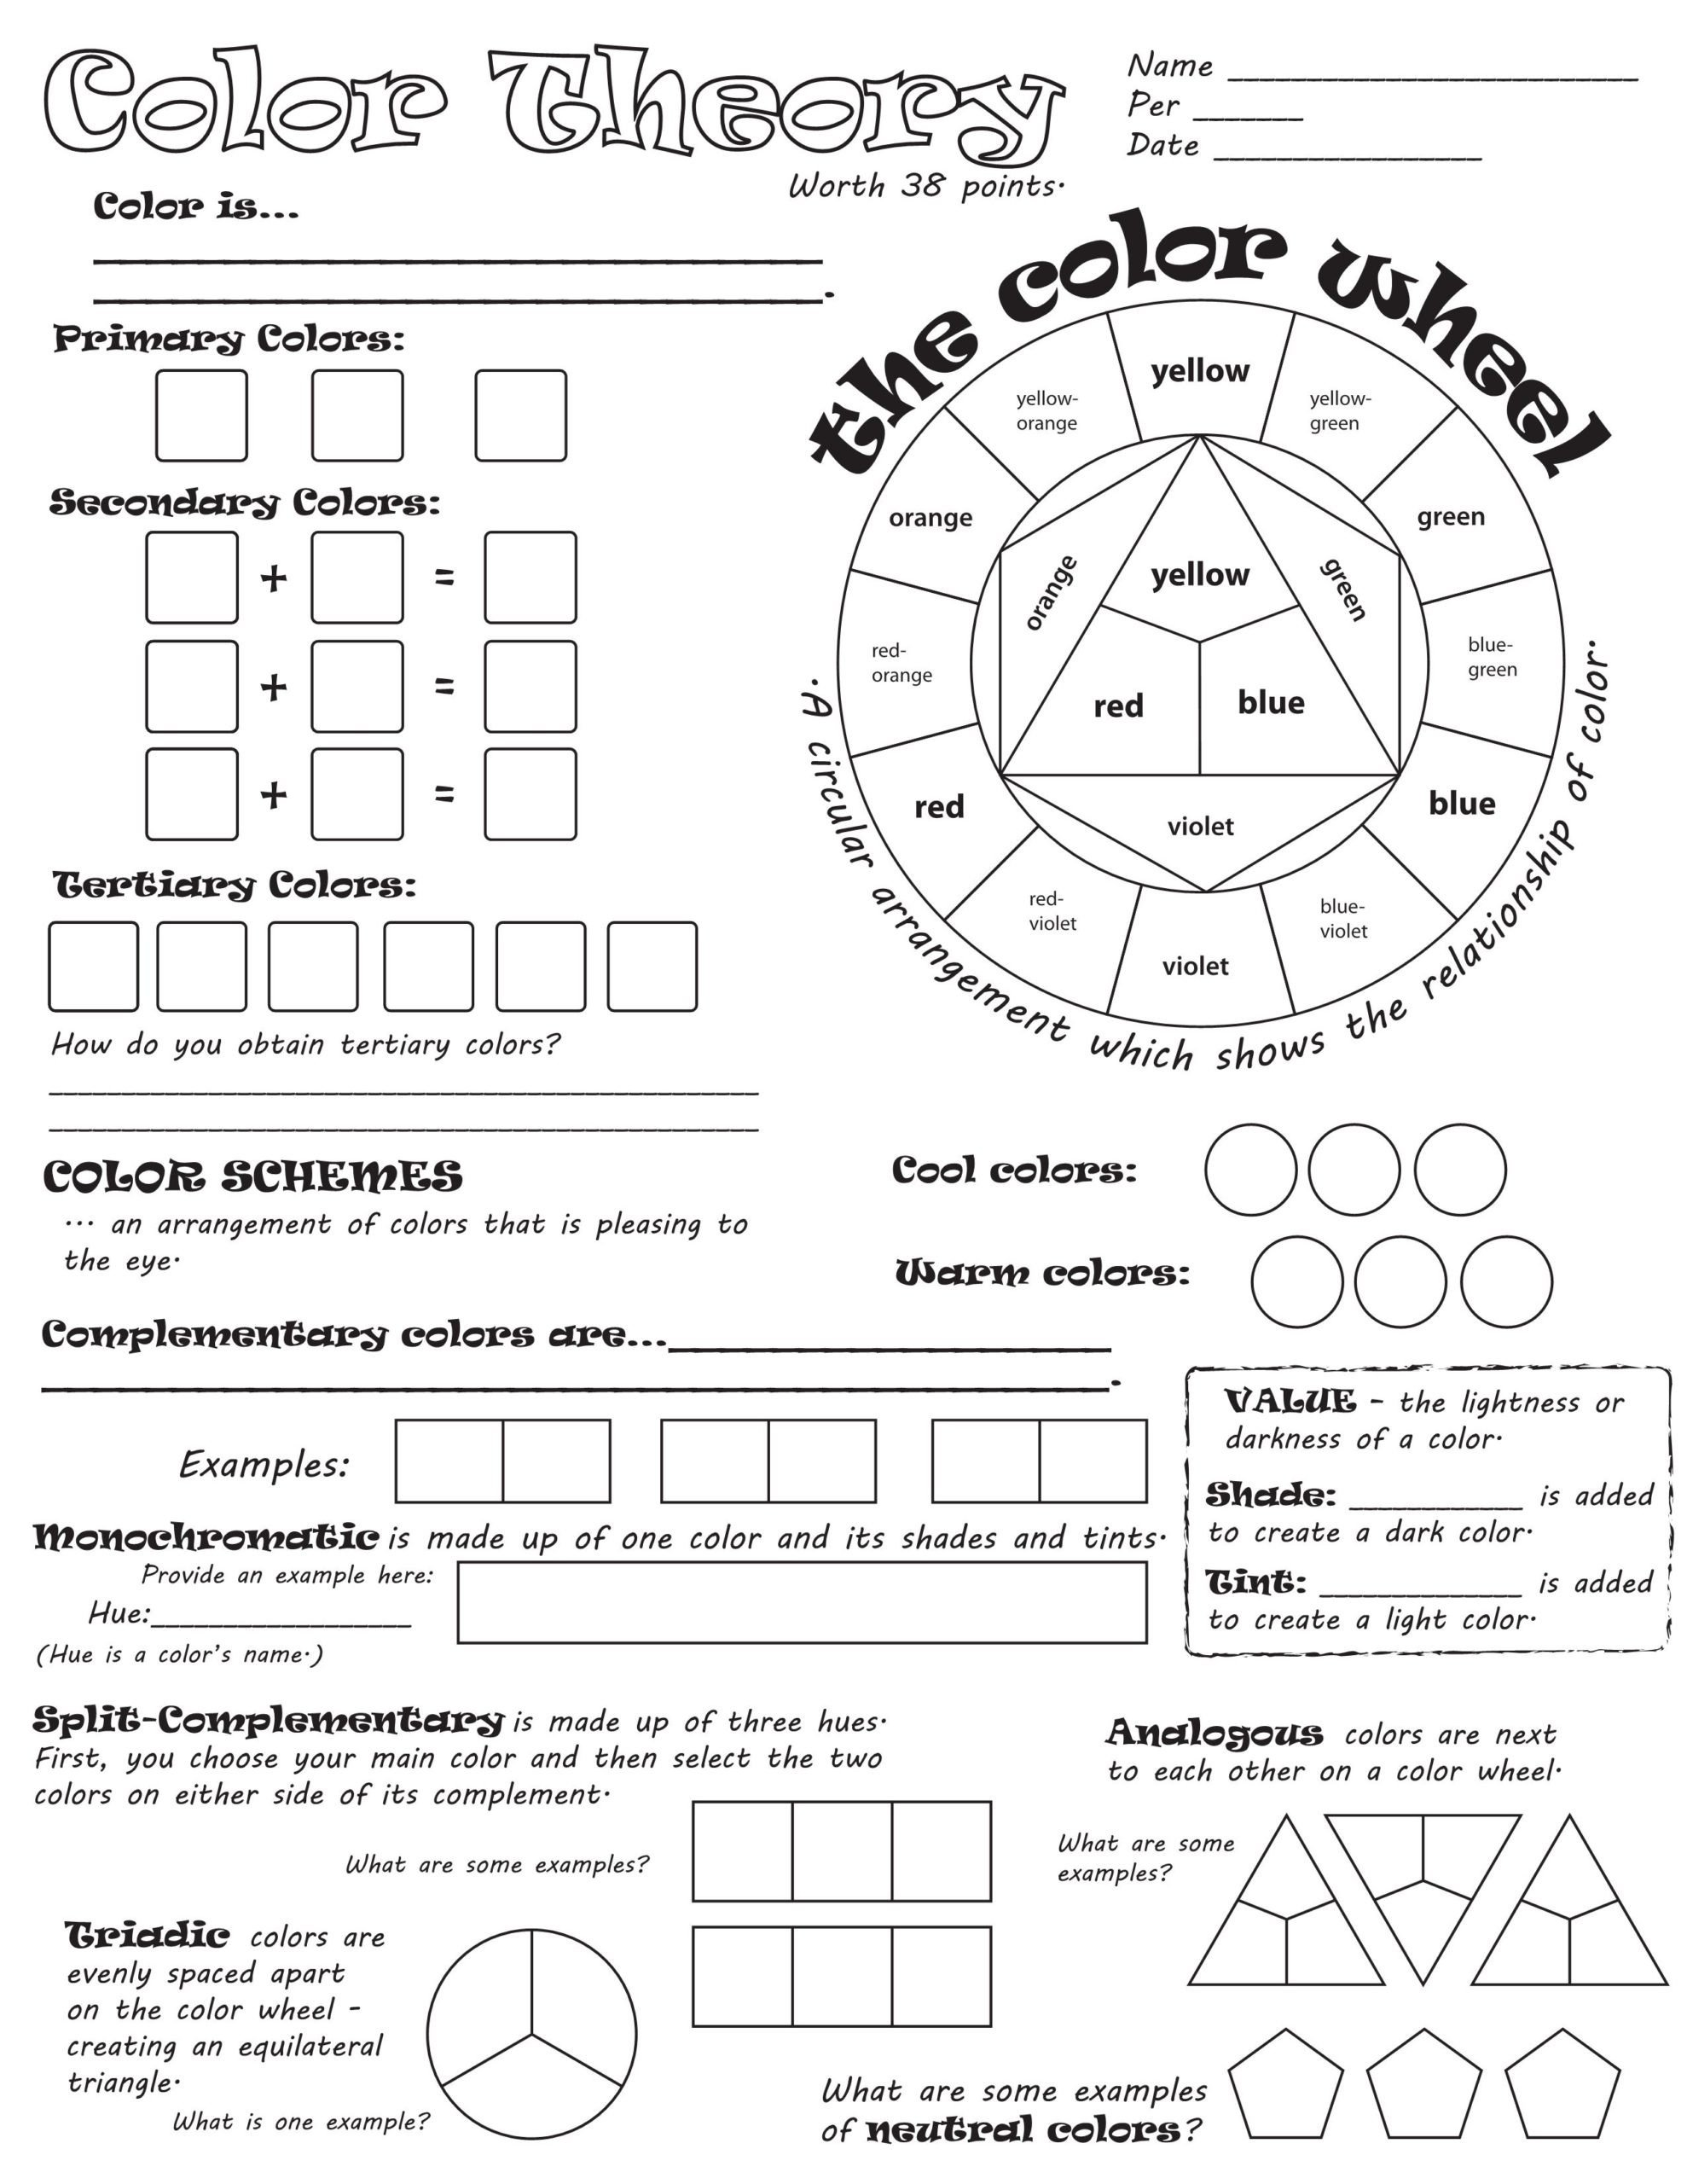 worksheet art education lessons elements of color analogy worksheets for grade science scaled